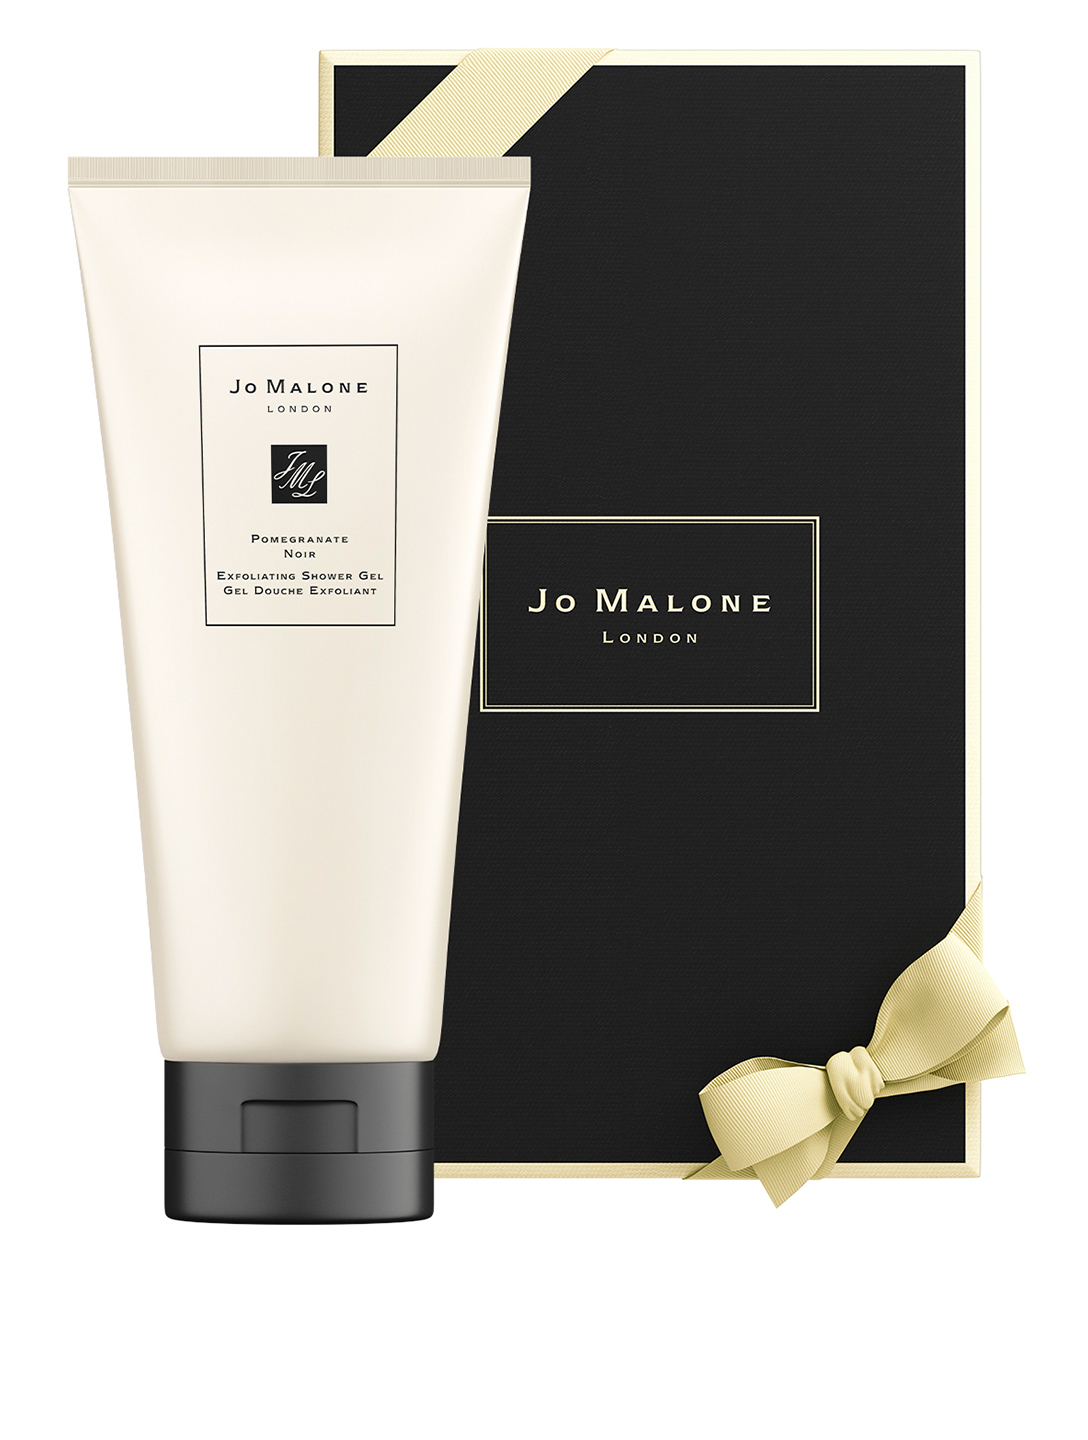 JO MALONE LONDON Gel douche exfoliant Pomegranate Noir Beauté